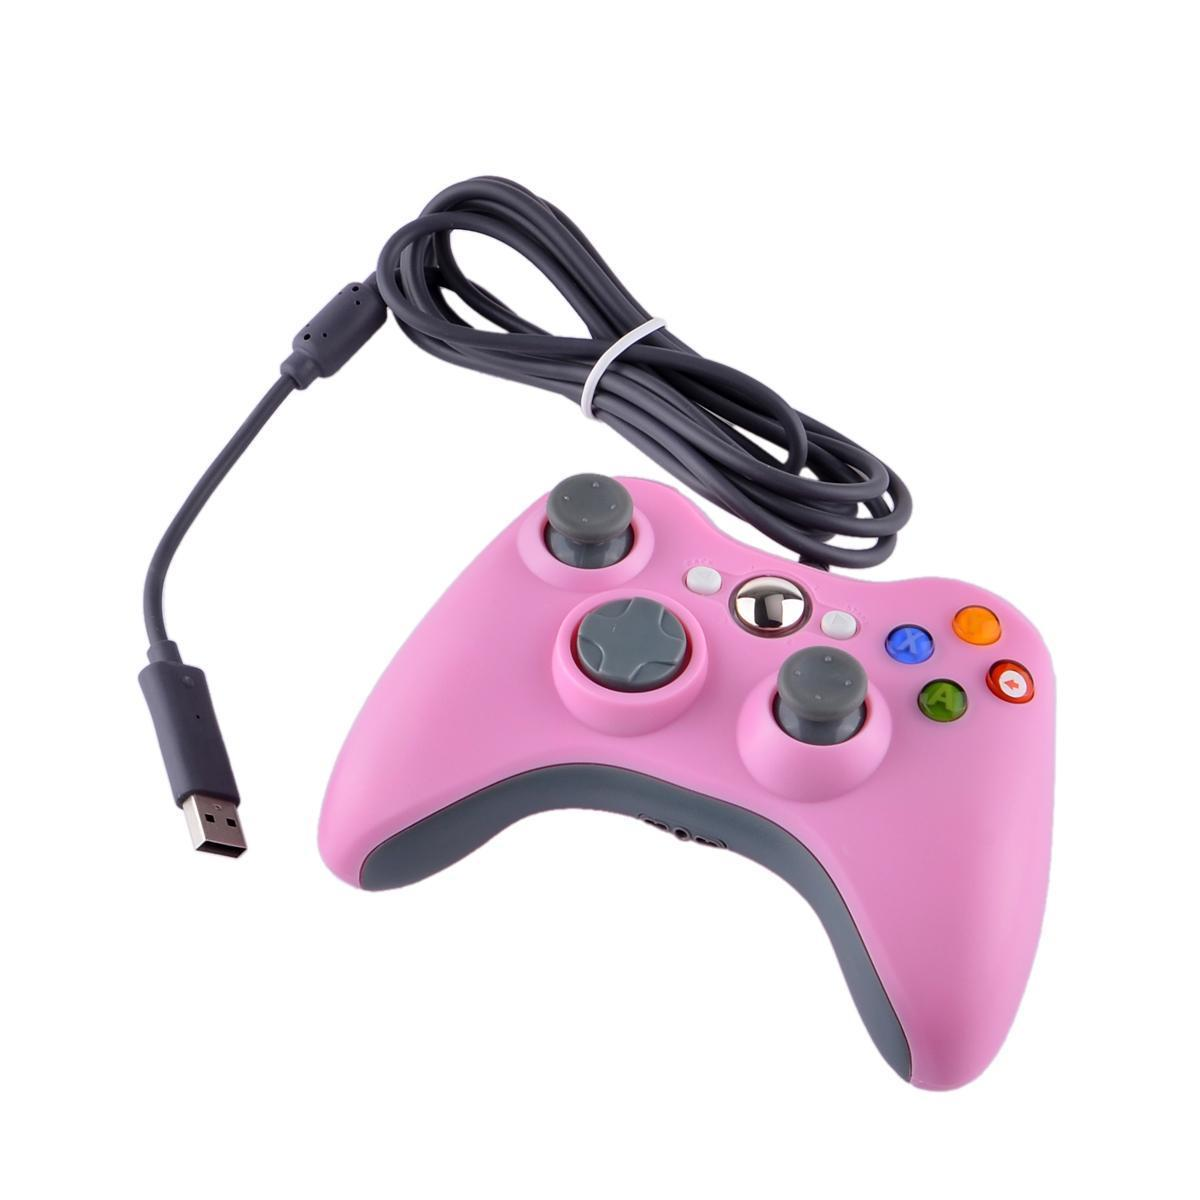 Wired USB Xbox 360 Gamepad Controller For Sale In Jamaica